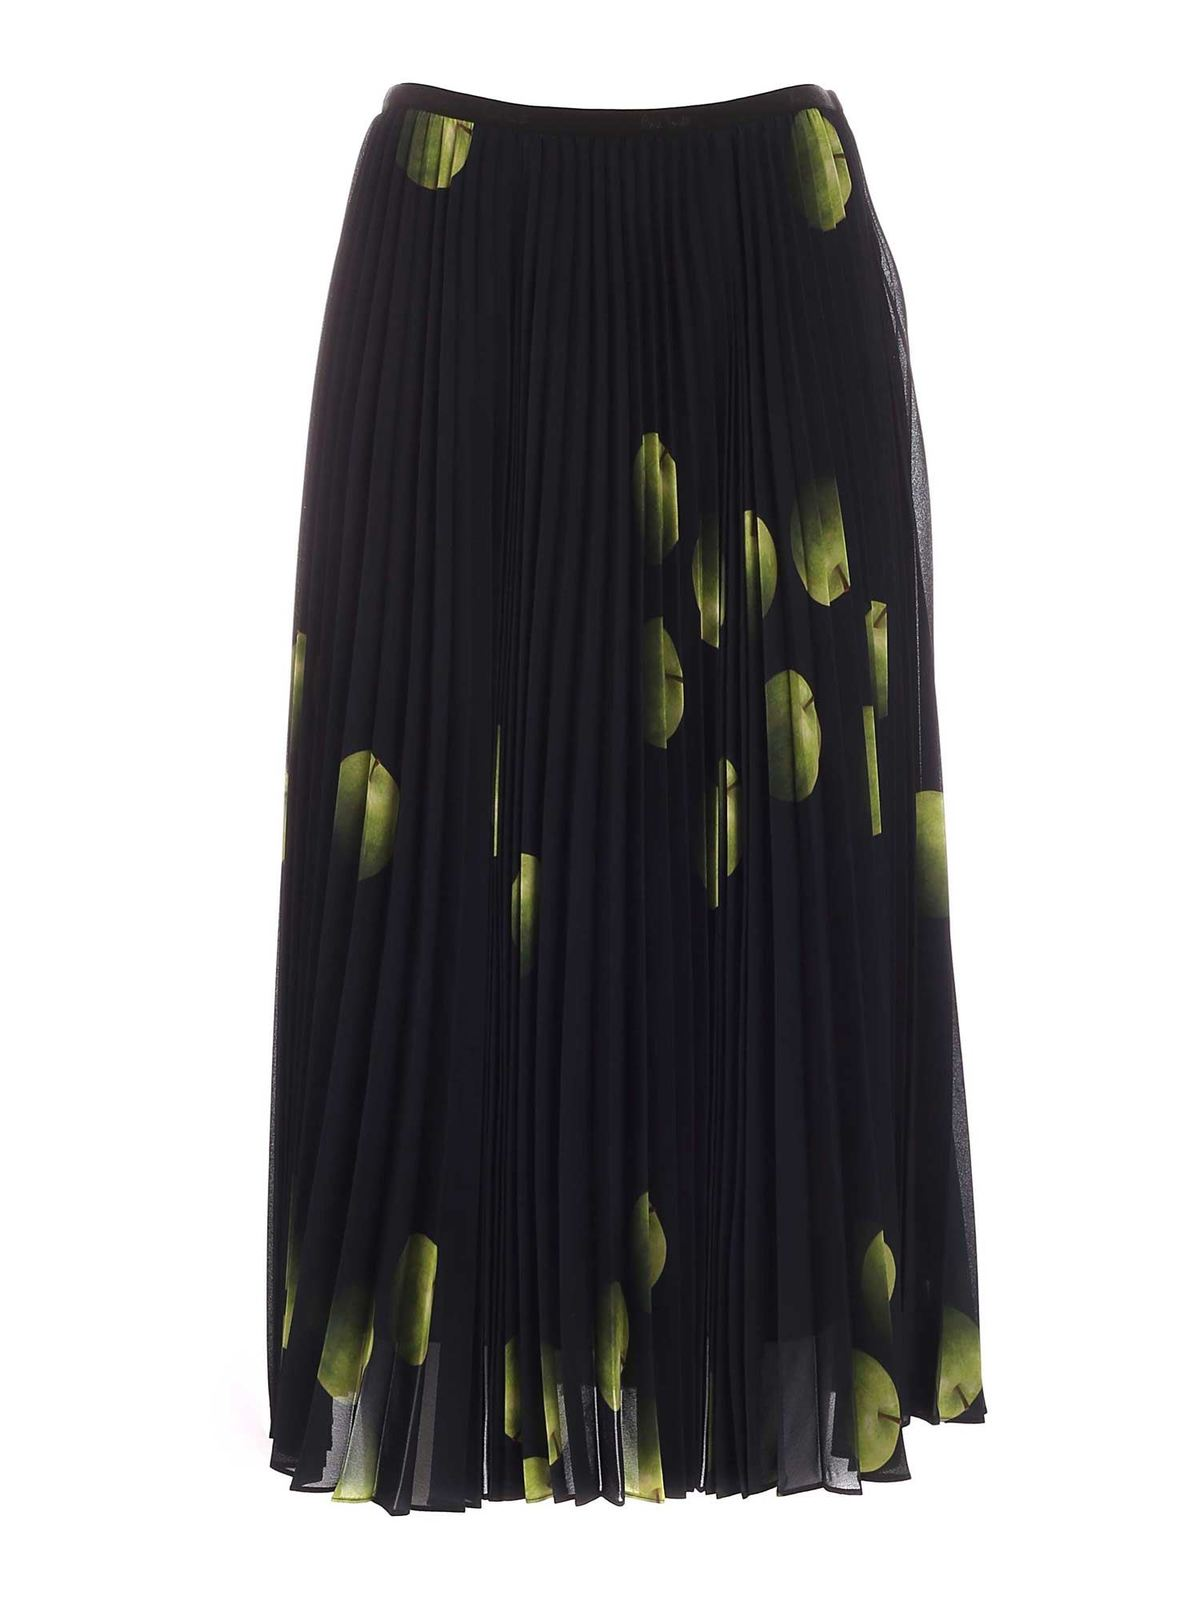 Paul Smith APPLE PRINT LONG SKIRT IN DARK BLUE